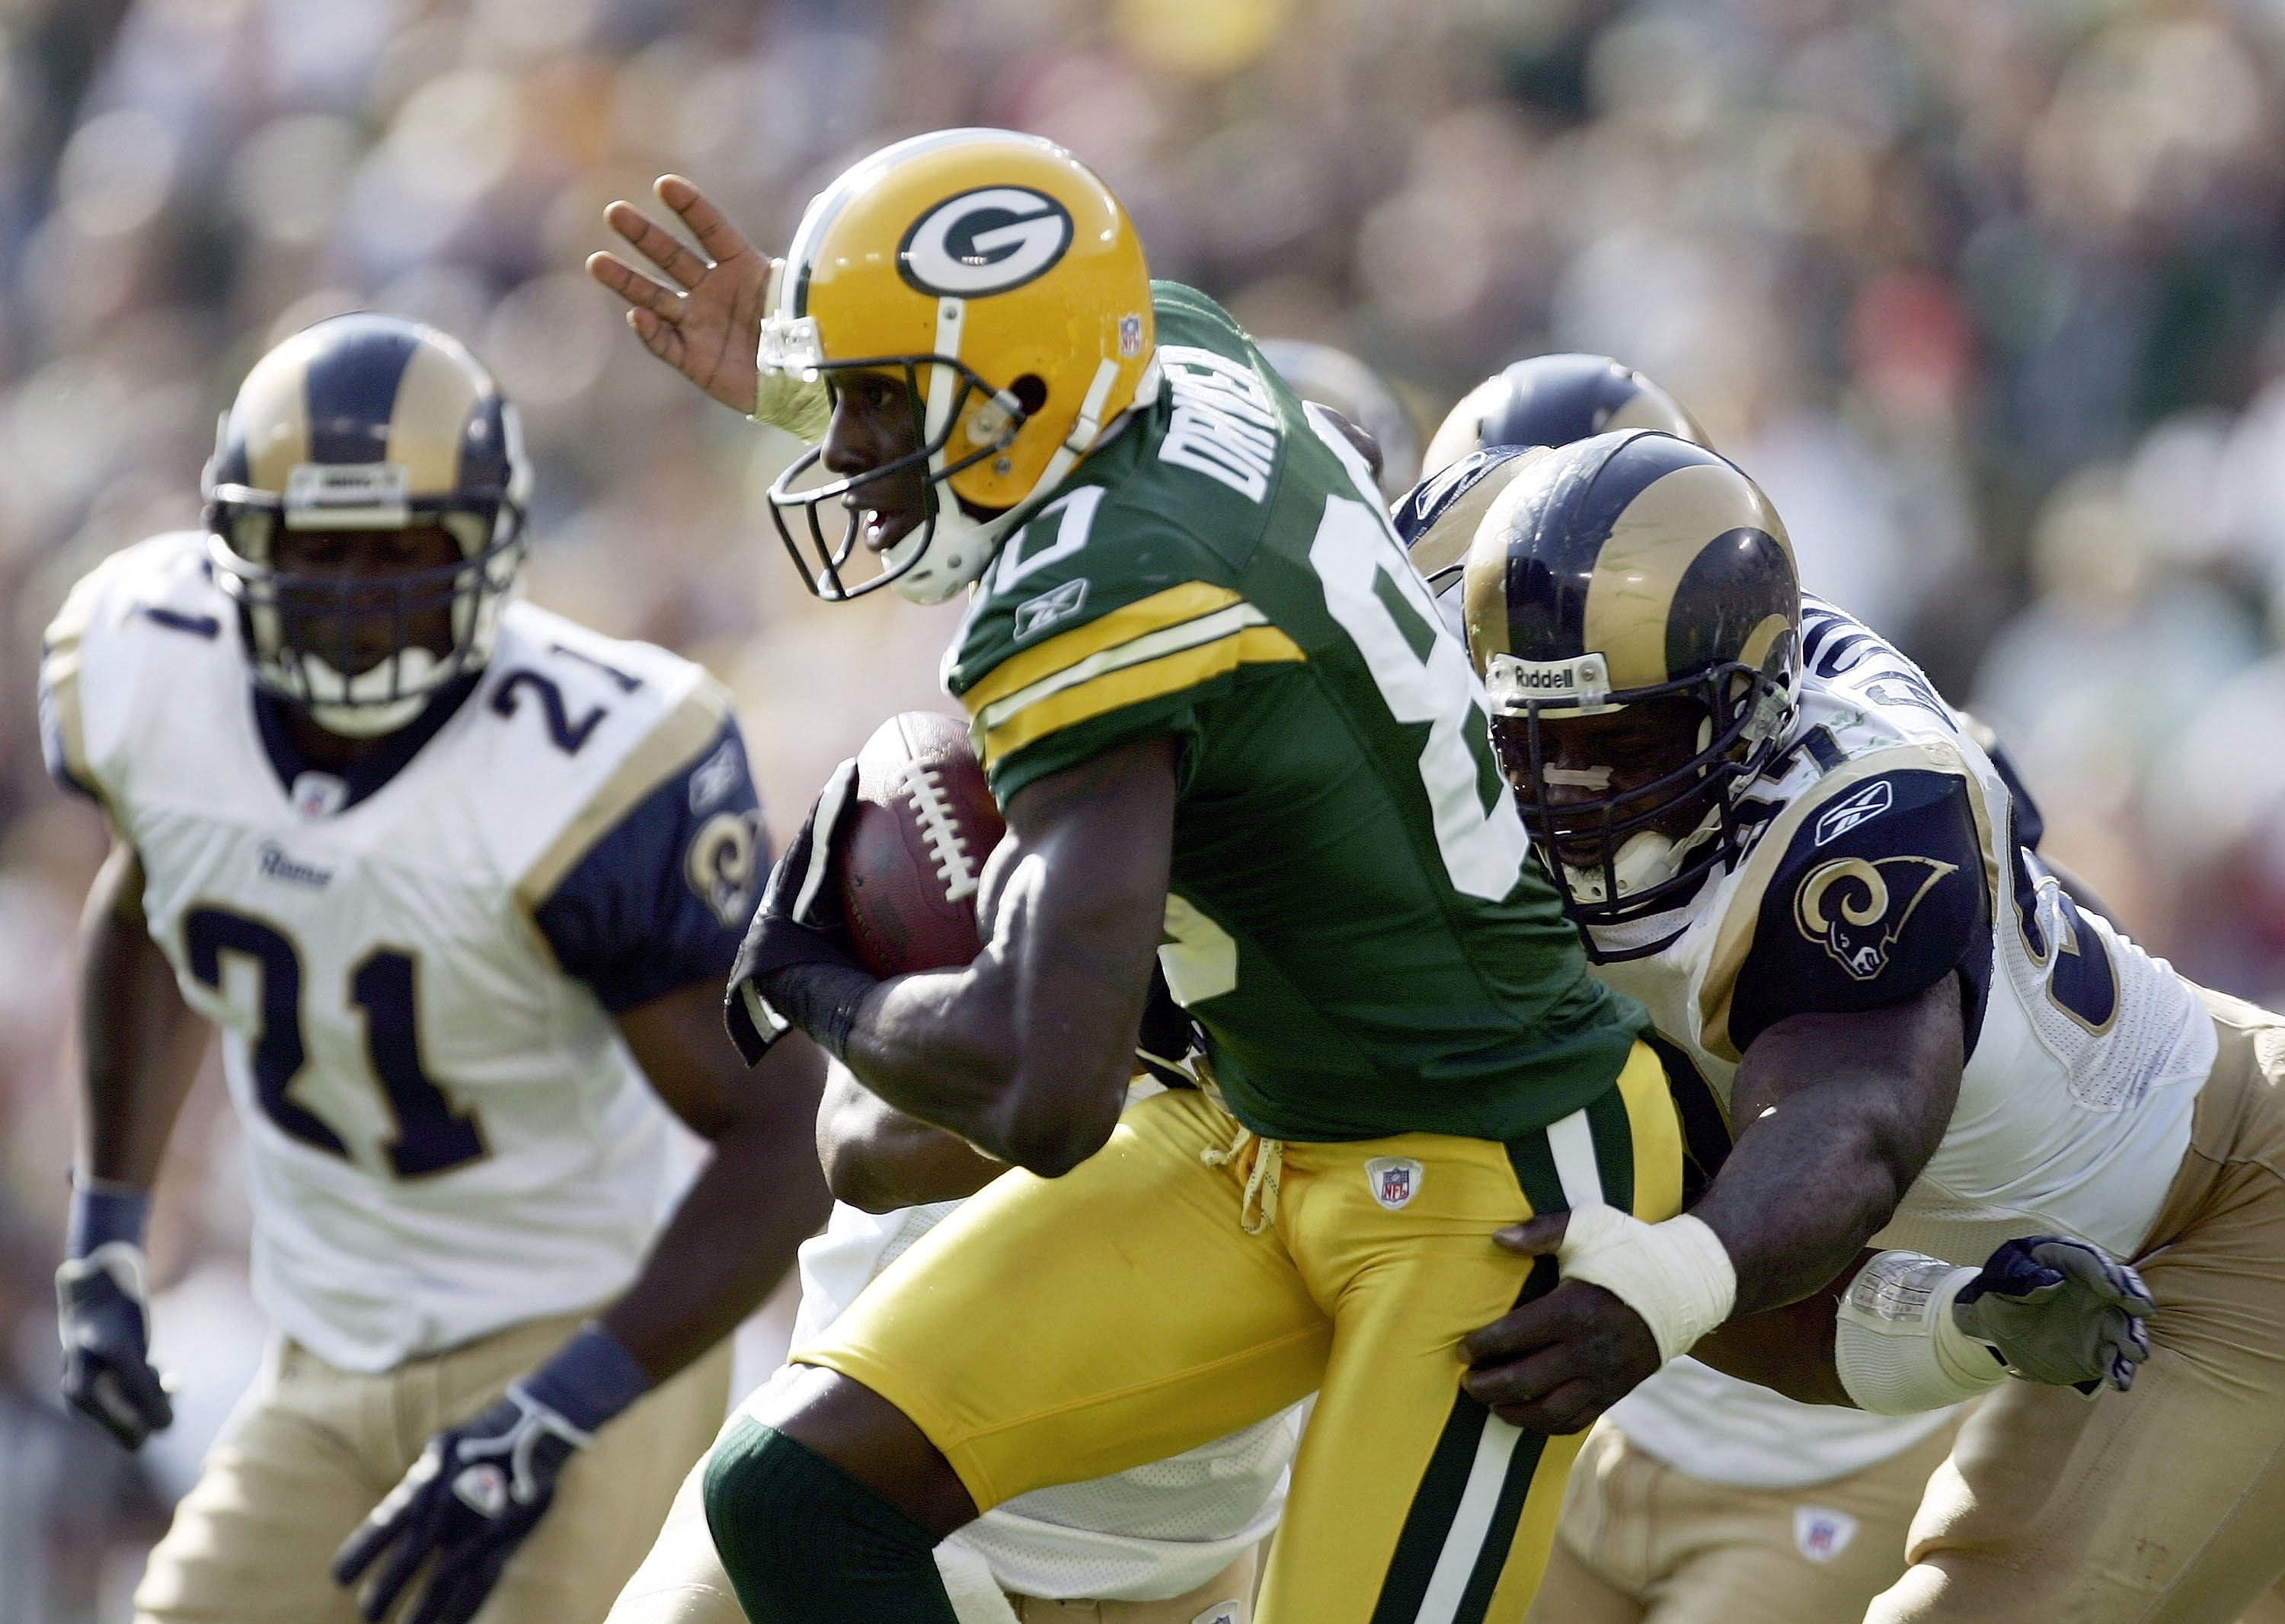 GREEN BAY, WI - OCTOBER 08:  Donald Driver #80 of the Green Bay Packers tries to break free from the tackle of La'Roi Glover #97 of the St. Louis Rams at Lambeau Field on October 8, 2006 in Green Bay, Wisconsin. The Rams won 23-20.  (Photo by Harry How/Ge